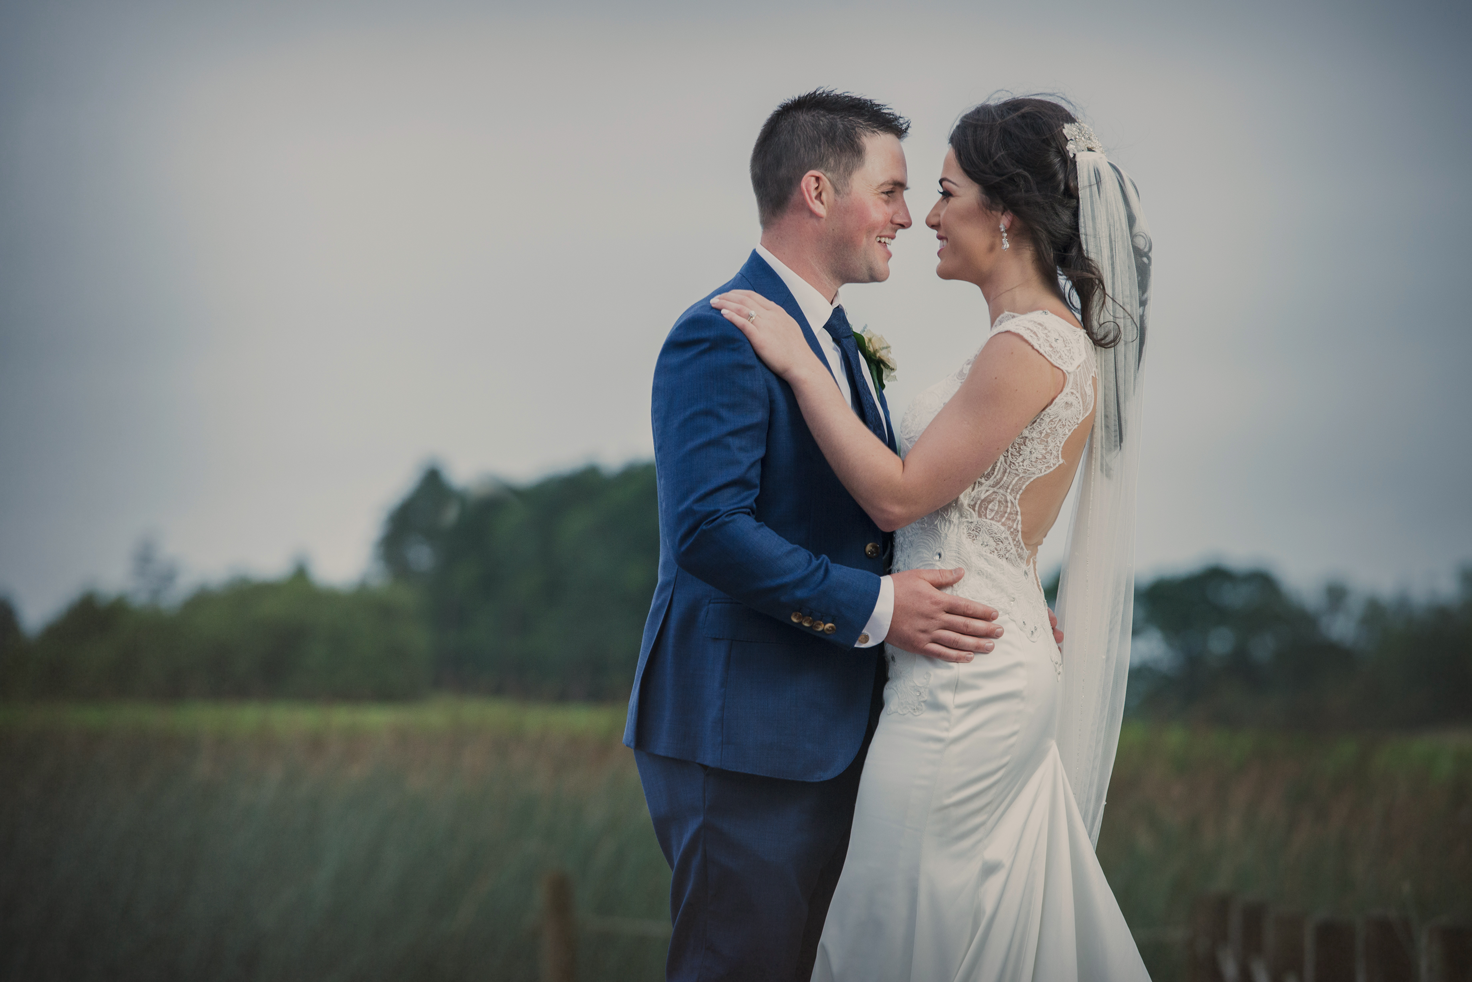 Danielle & Anthony - JULY | LOUGH ERNE